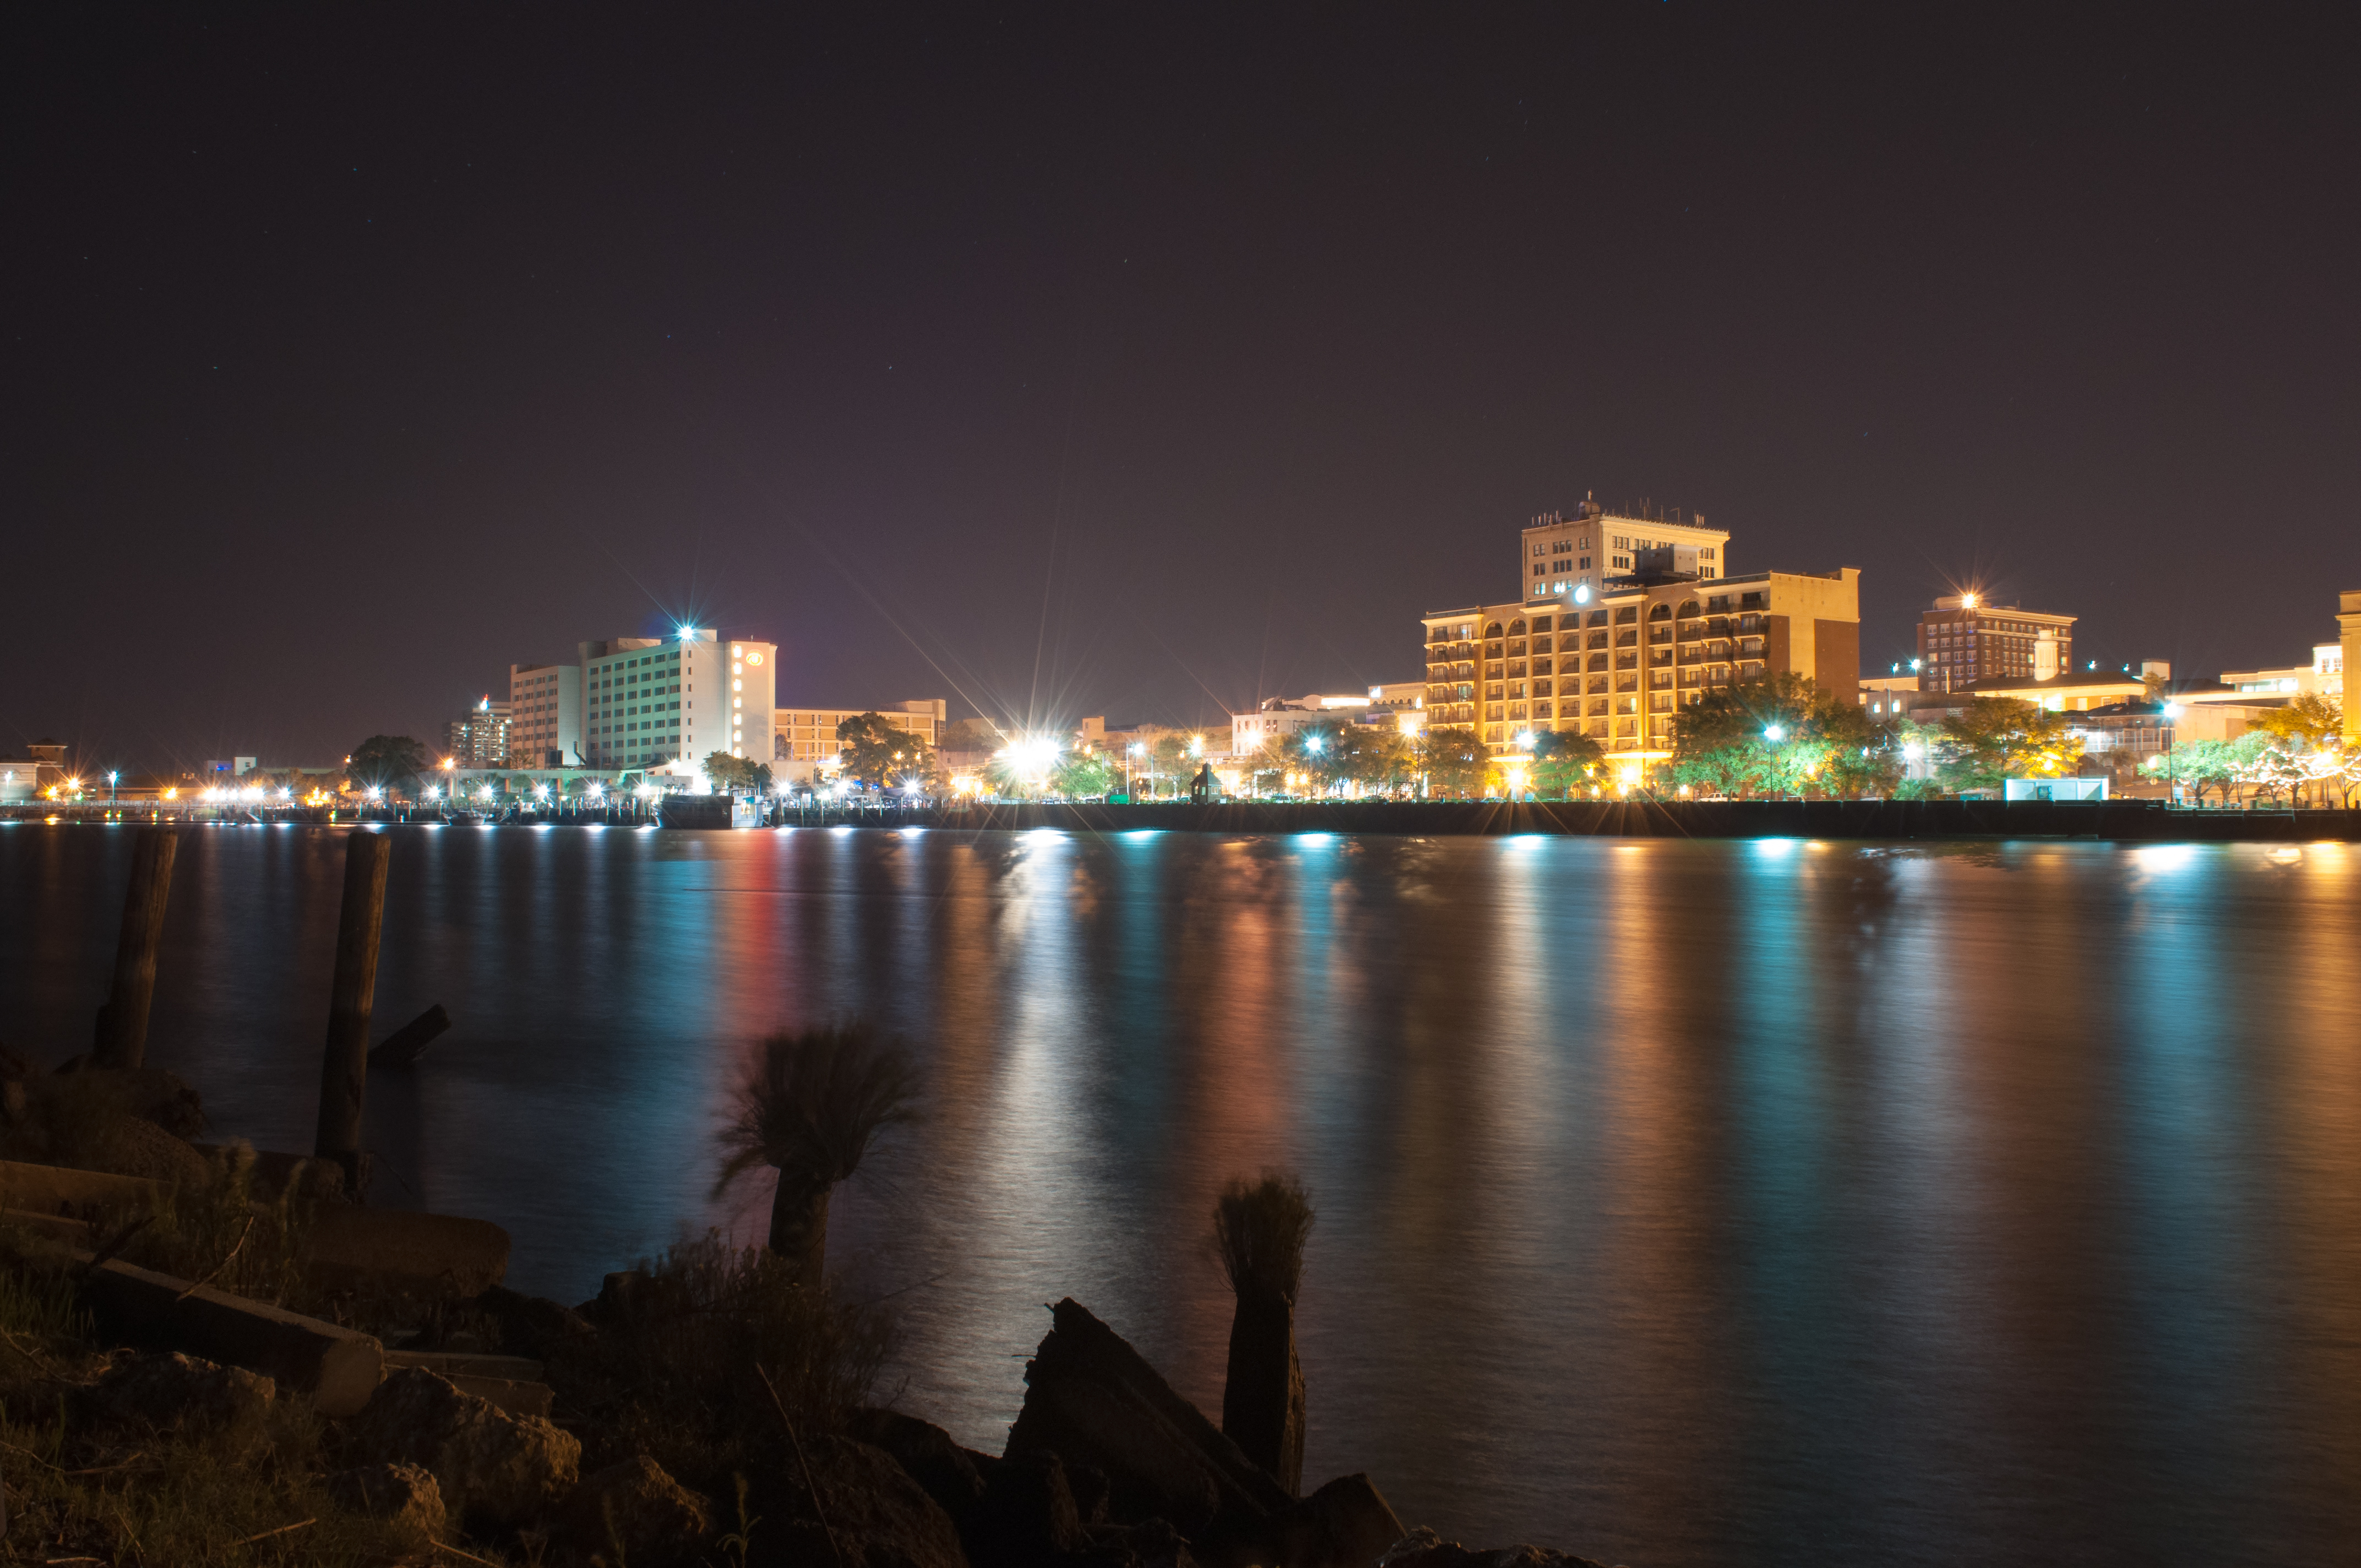 Night view of Wilmington from waterfront